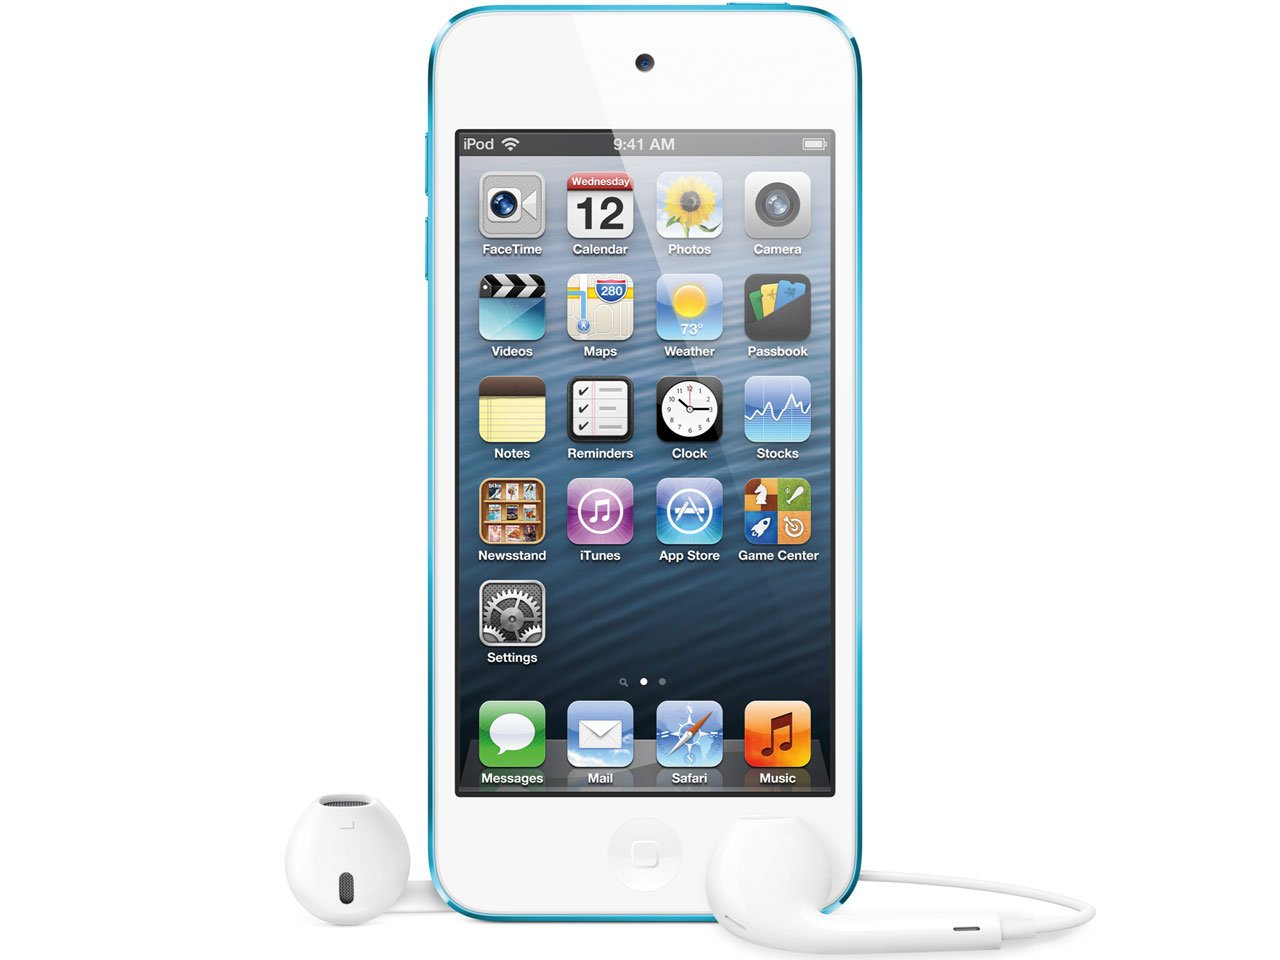 iPod touch ��5���� [32GB] �̐��i�摜